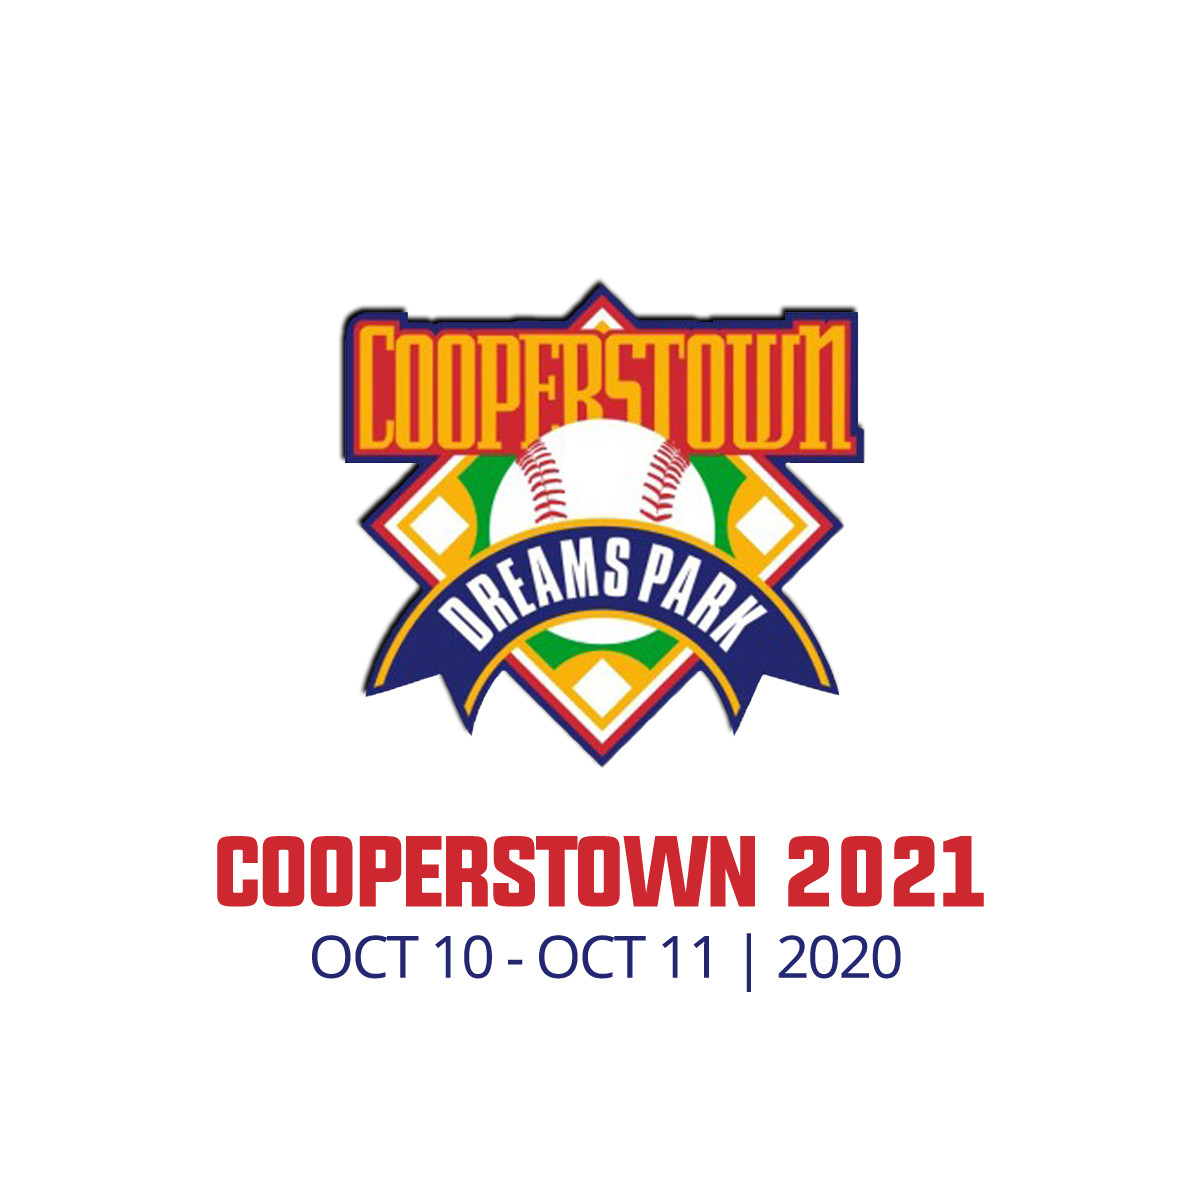 UPSTATE - COOPERSTOWN 2021